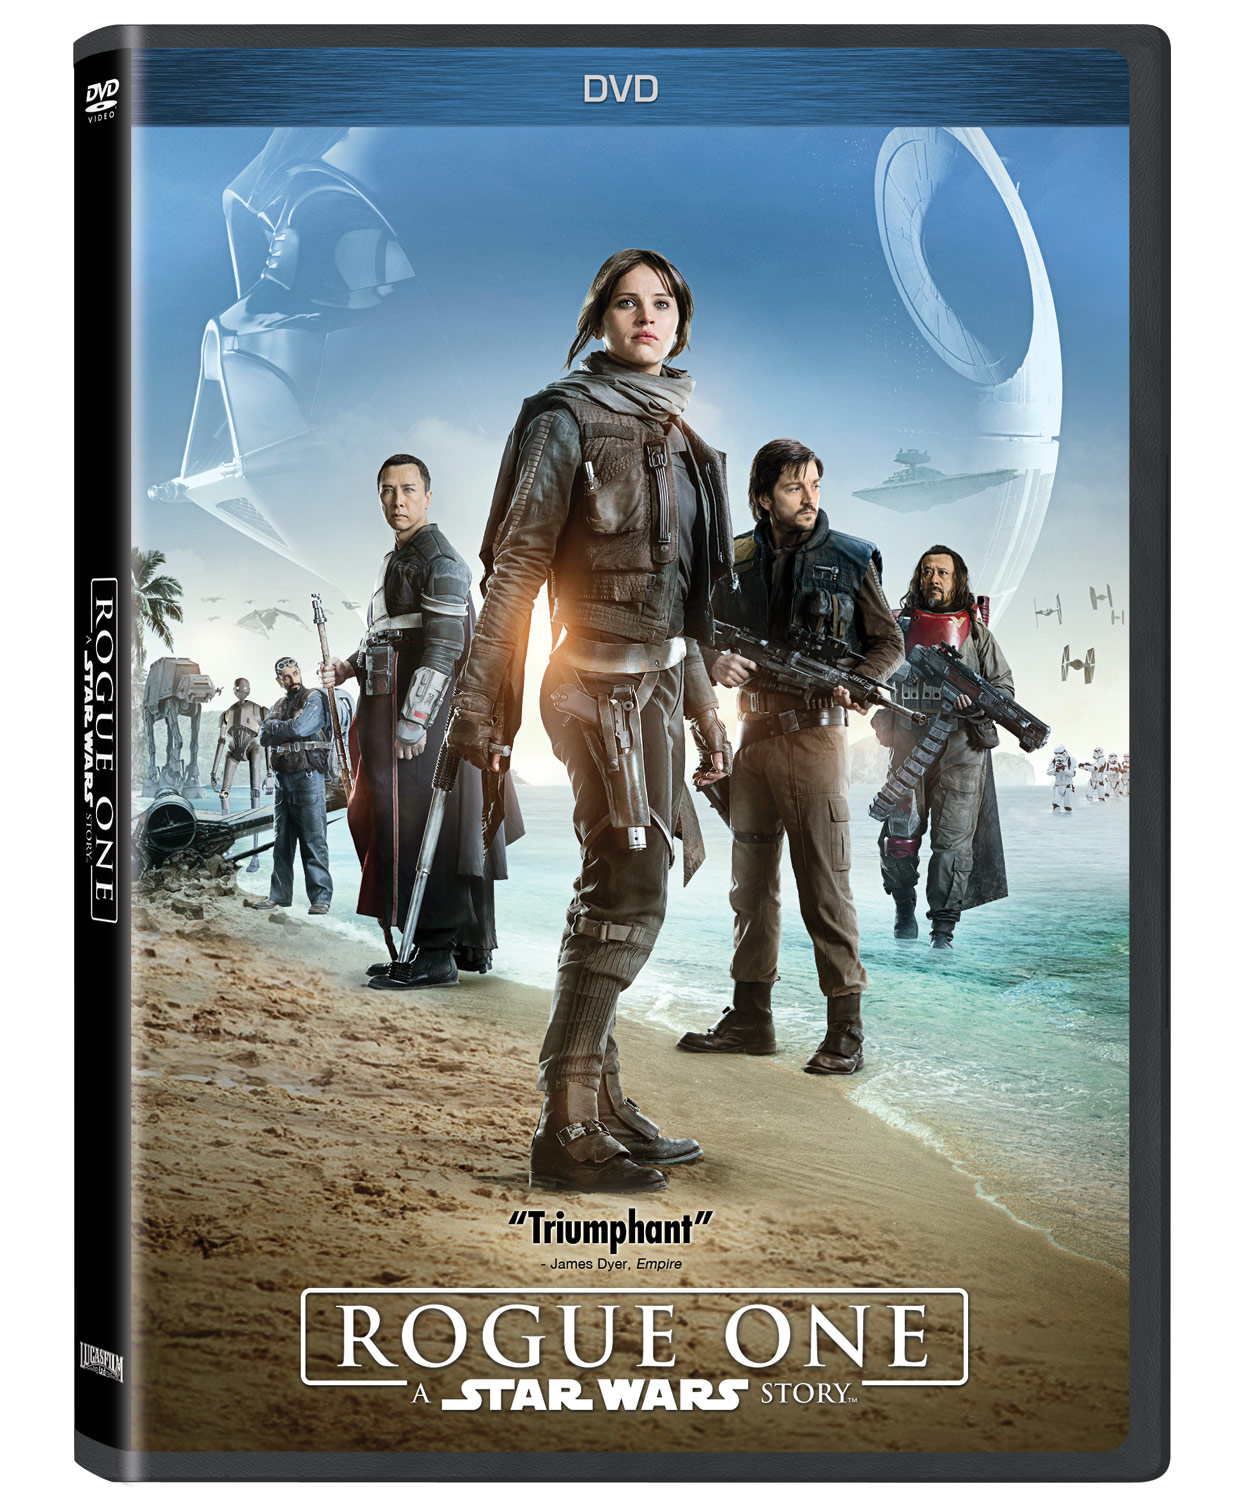 The Mission Comes Home: Rogue One: A Star Wars Story Arrives